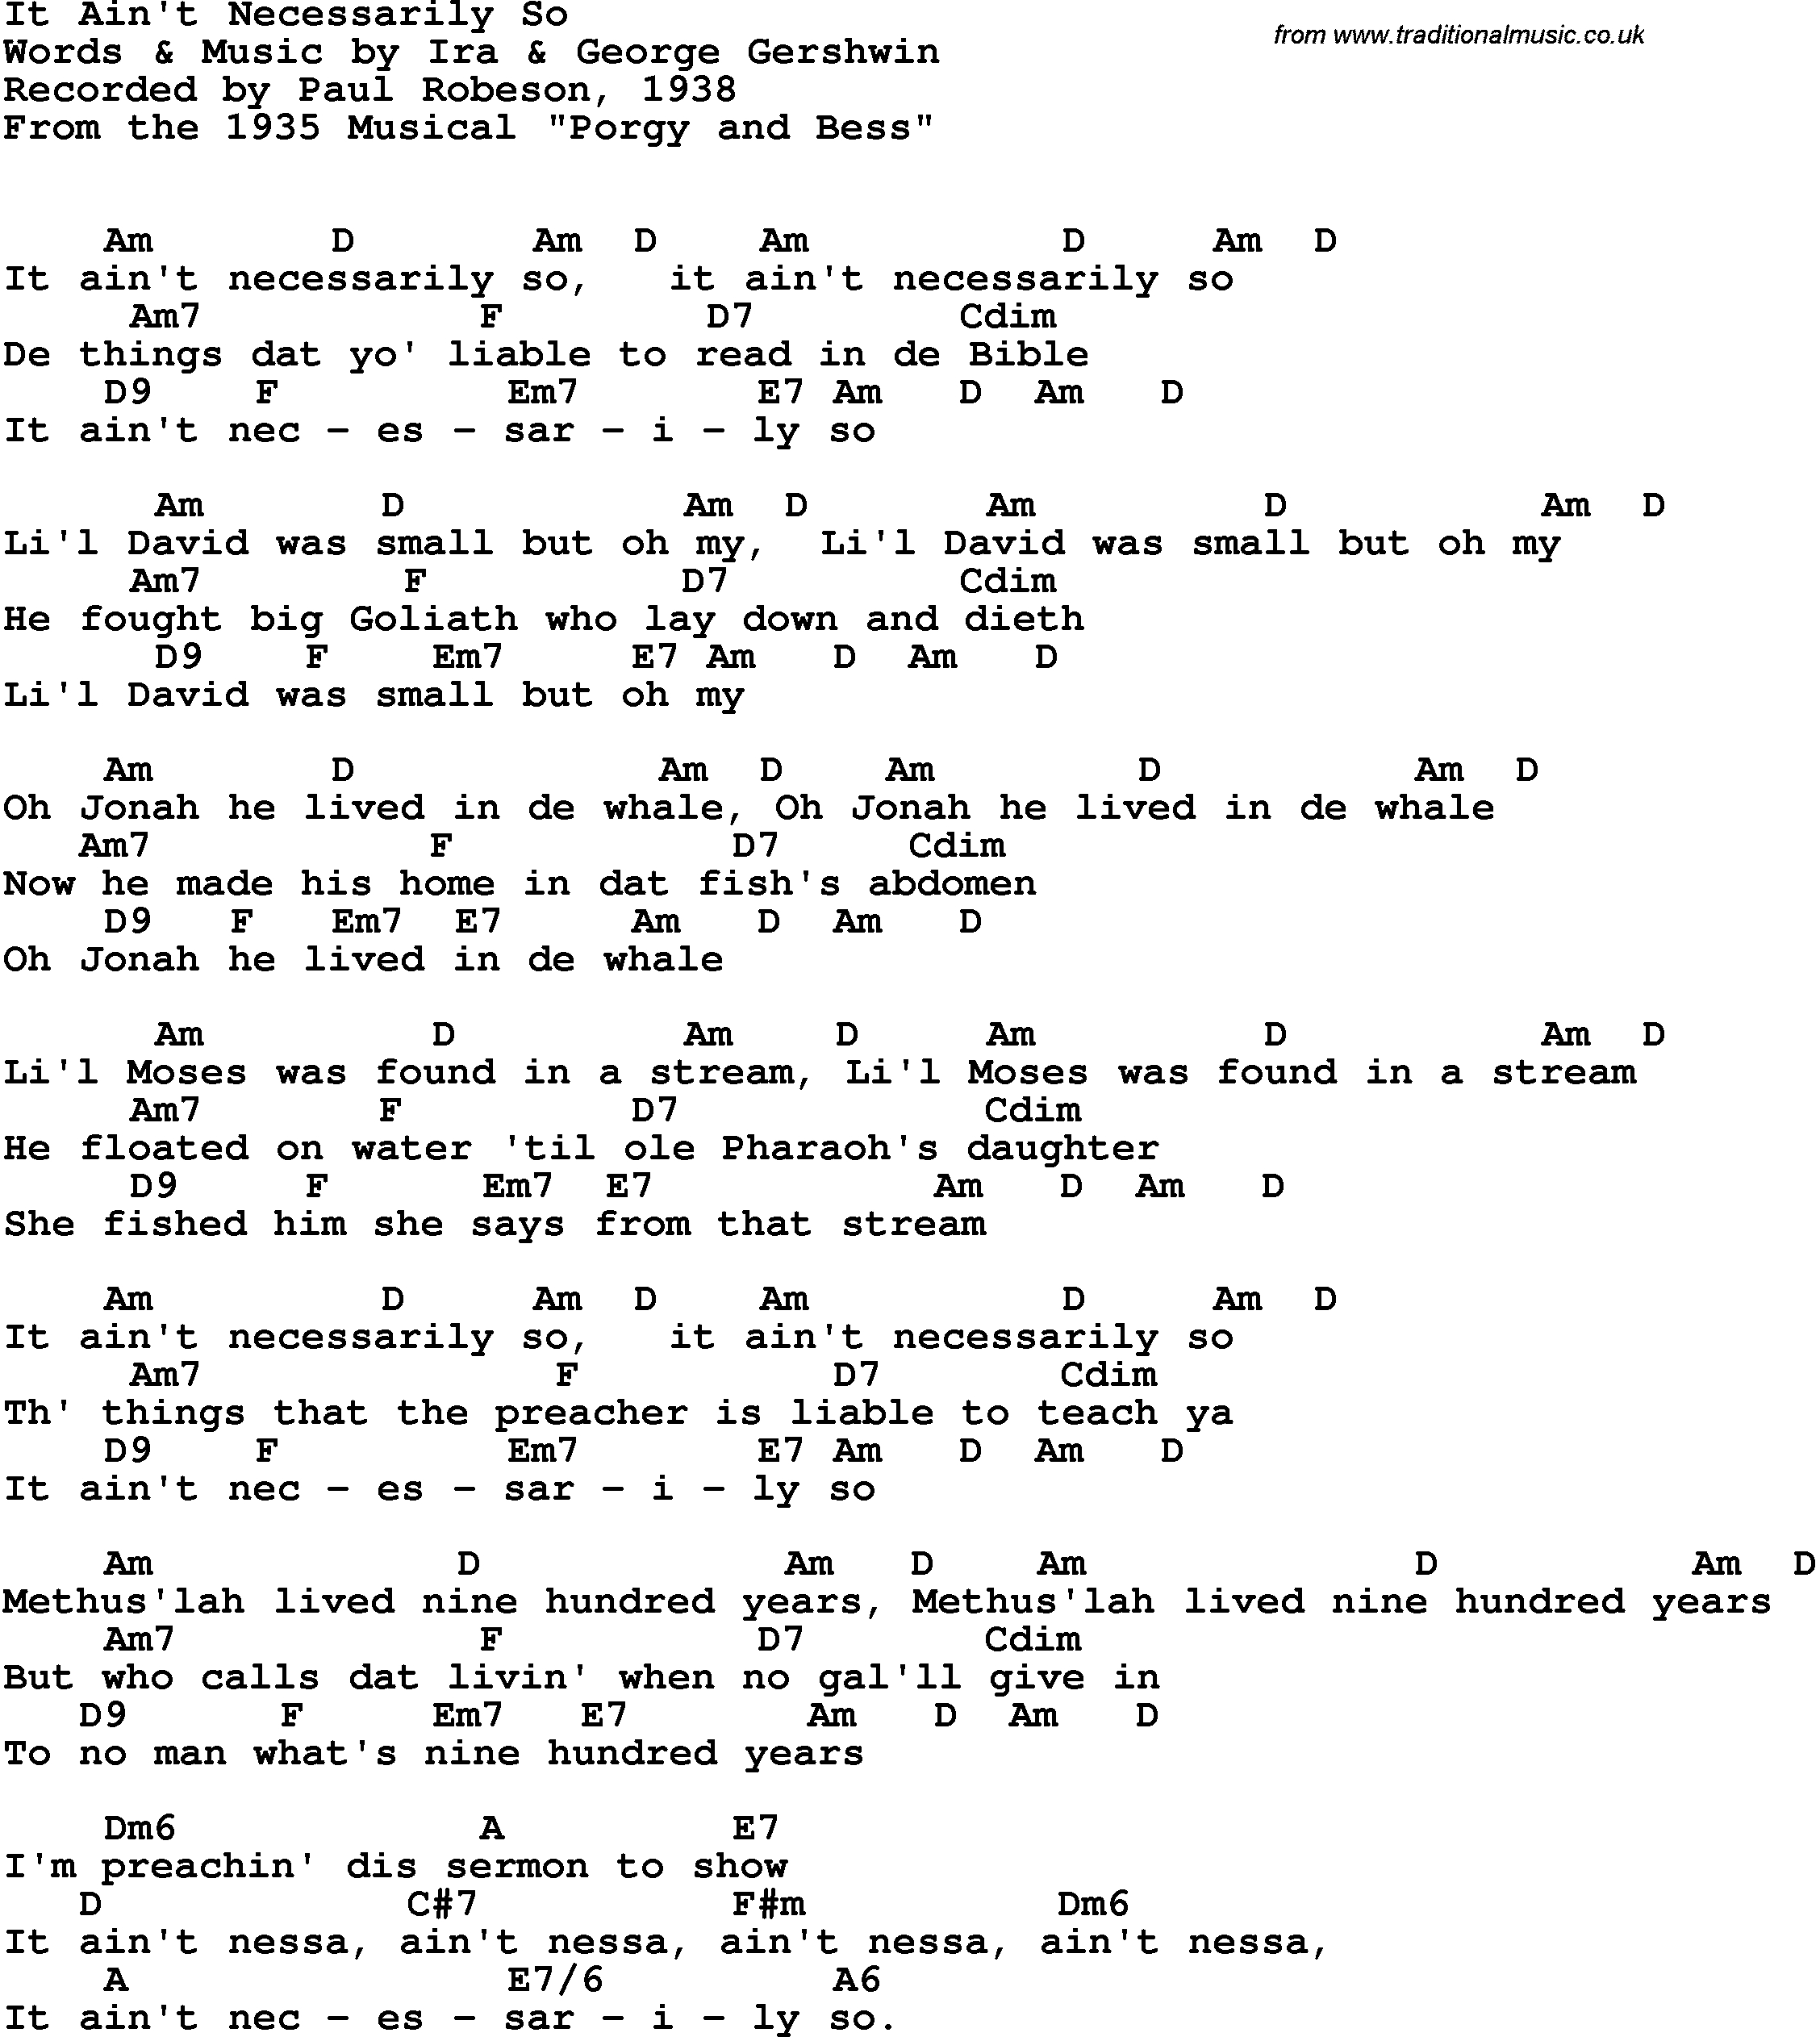 Ain T No Sunshine Chords Song Lyrics With Guitar Chords For It Aint Necessarily So Paul